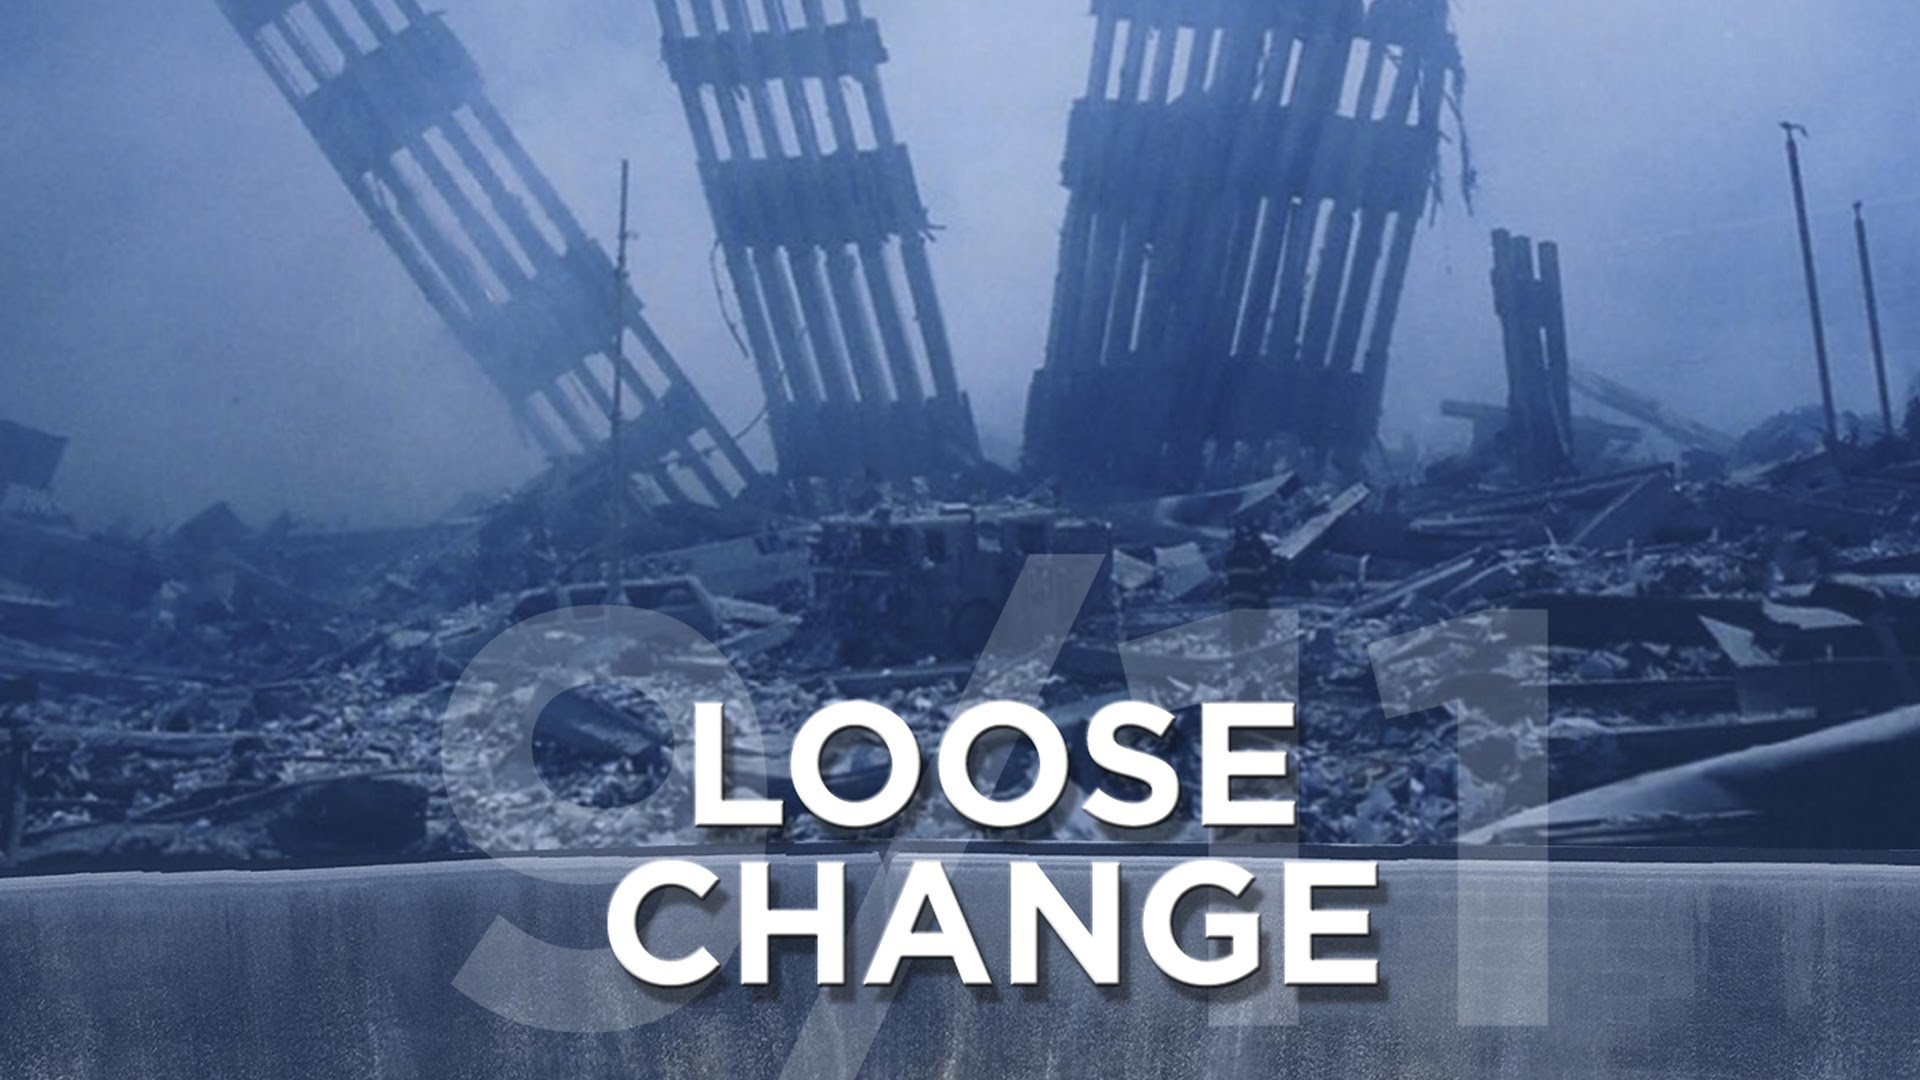 Bustin' Loose: 'Loose Change' Documentary Breaks Down 9/11 Attacks